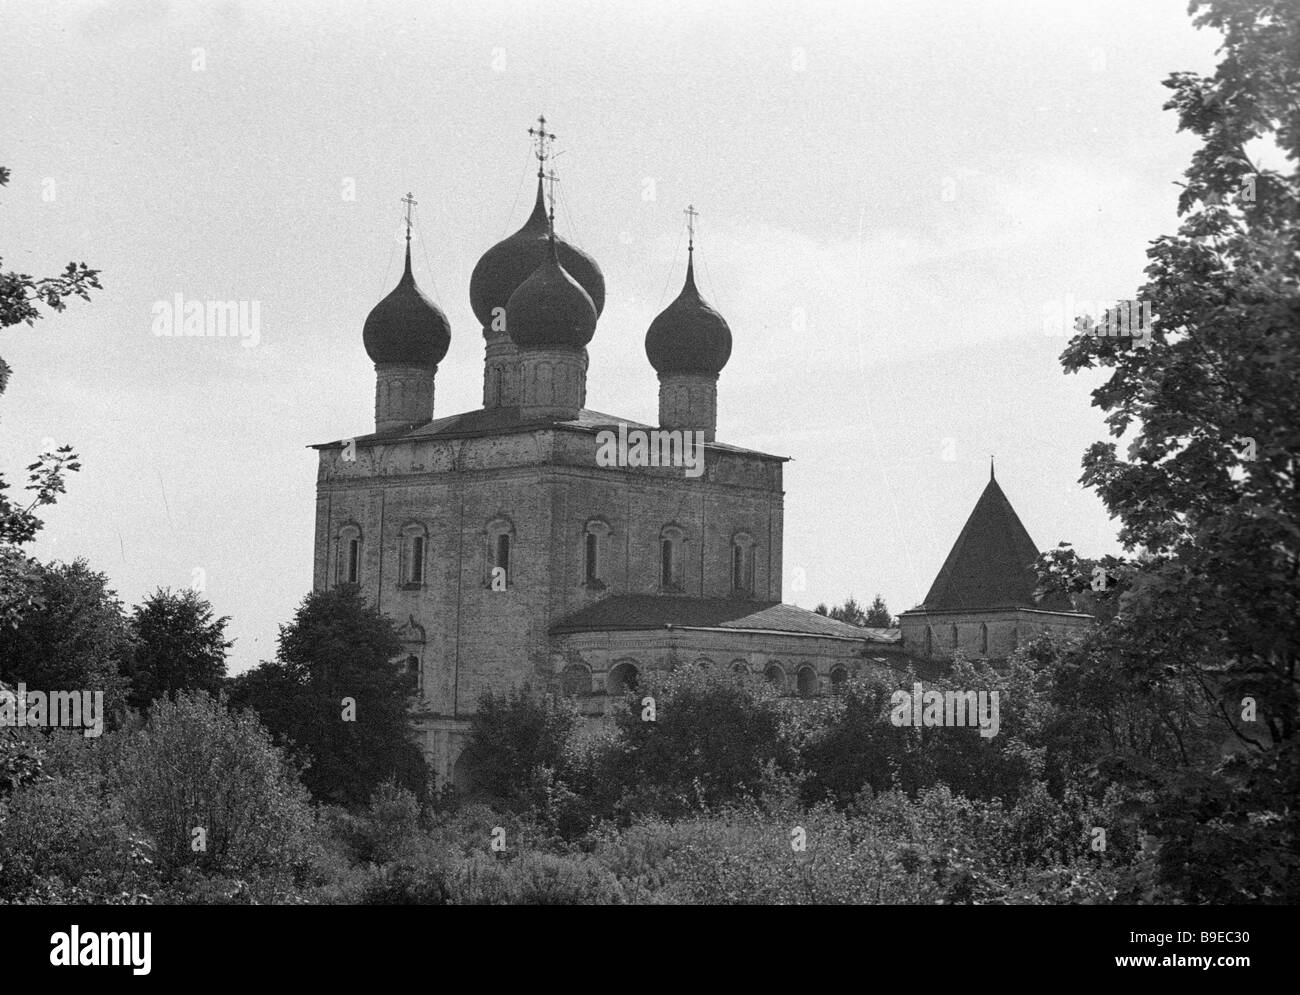 St Sergius church of the SS Boris and Gleb Monastery - Stock Image